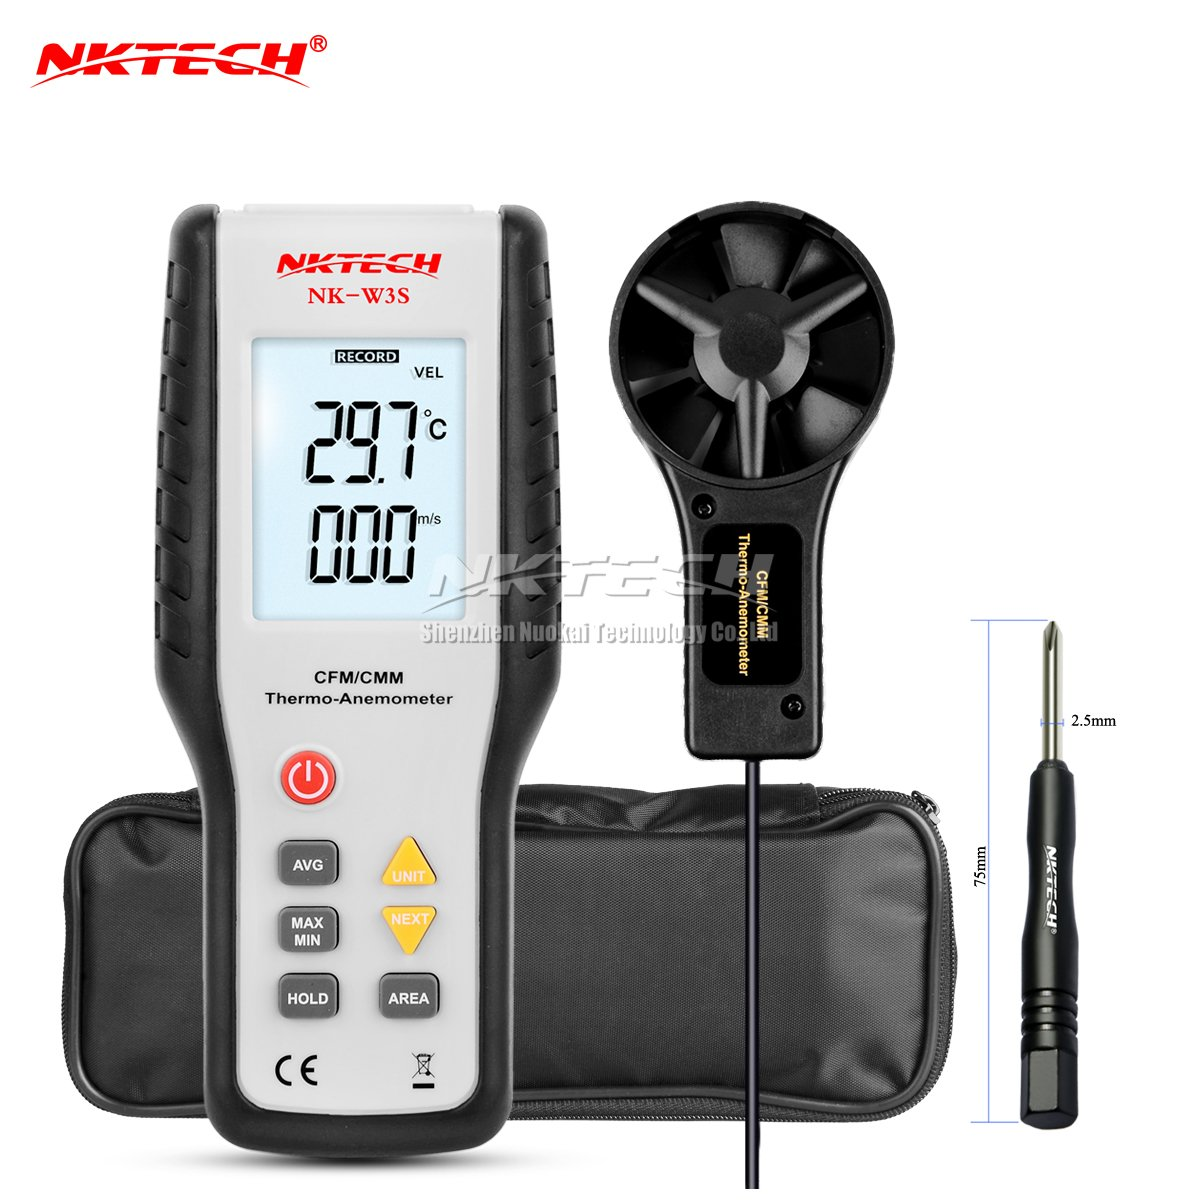 NKTECH Digital Anemometer Thermometer CFM/CMM NK-W3S LCD Backlit Airflow Wind Meter Air Velocity Volume Thermo Temperature Tester For Windsurfing Kite Flying Sailing Surfing Fishing